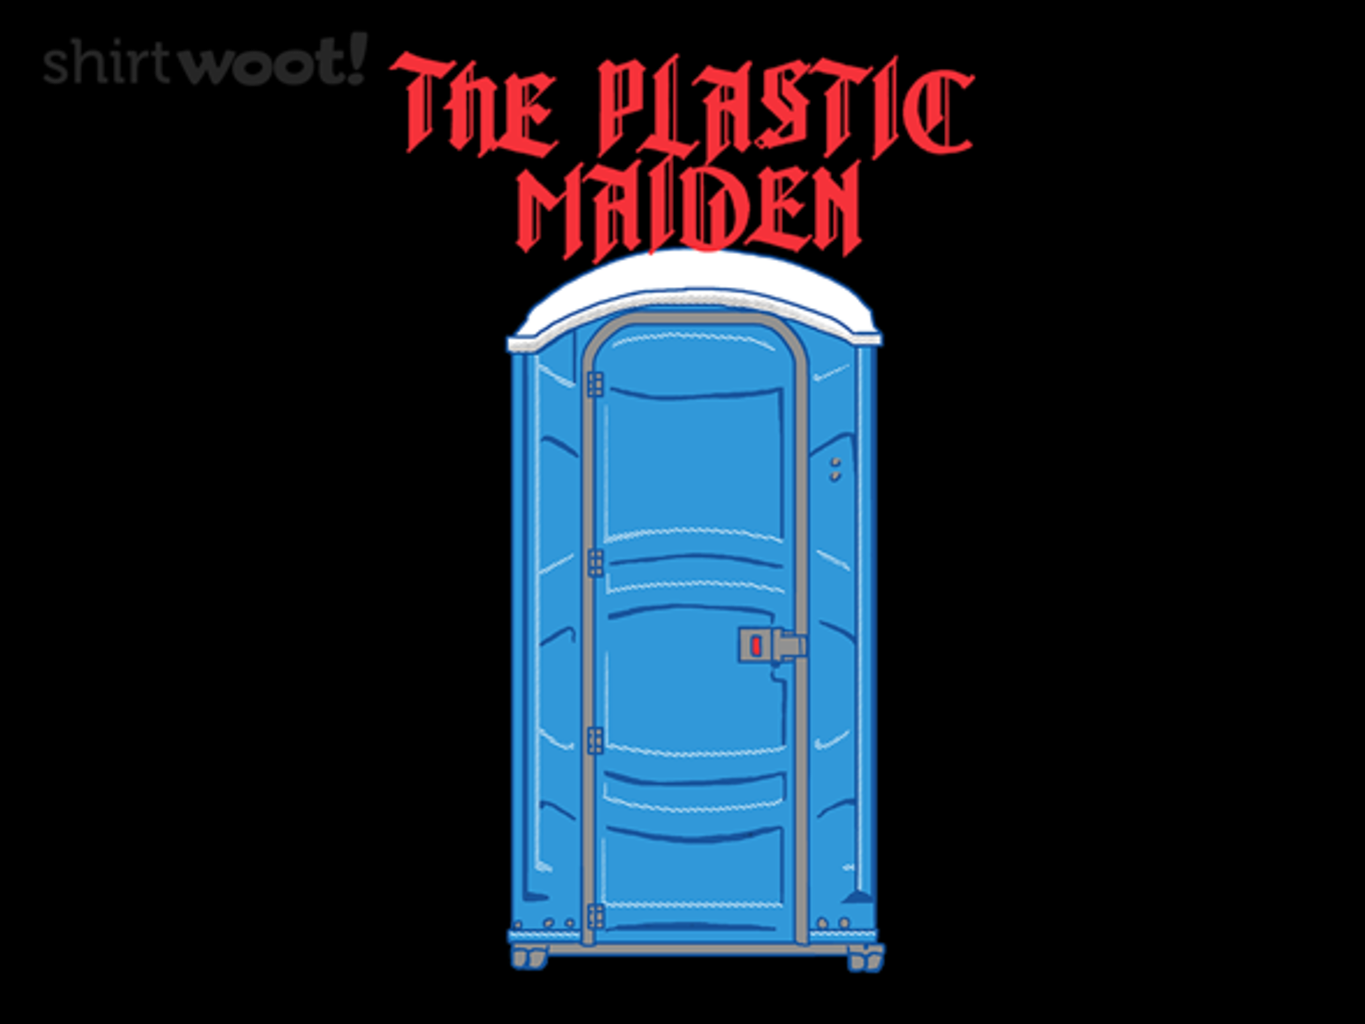 Woot!: The Plastic Maiden